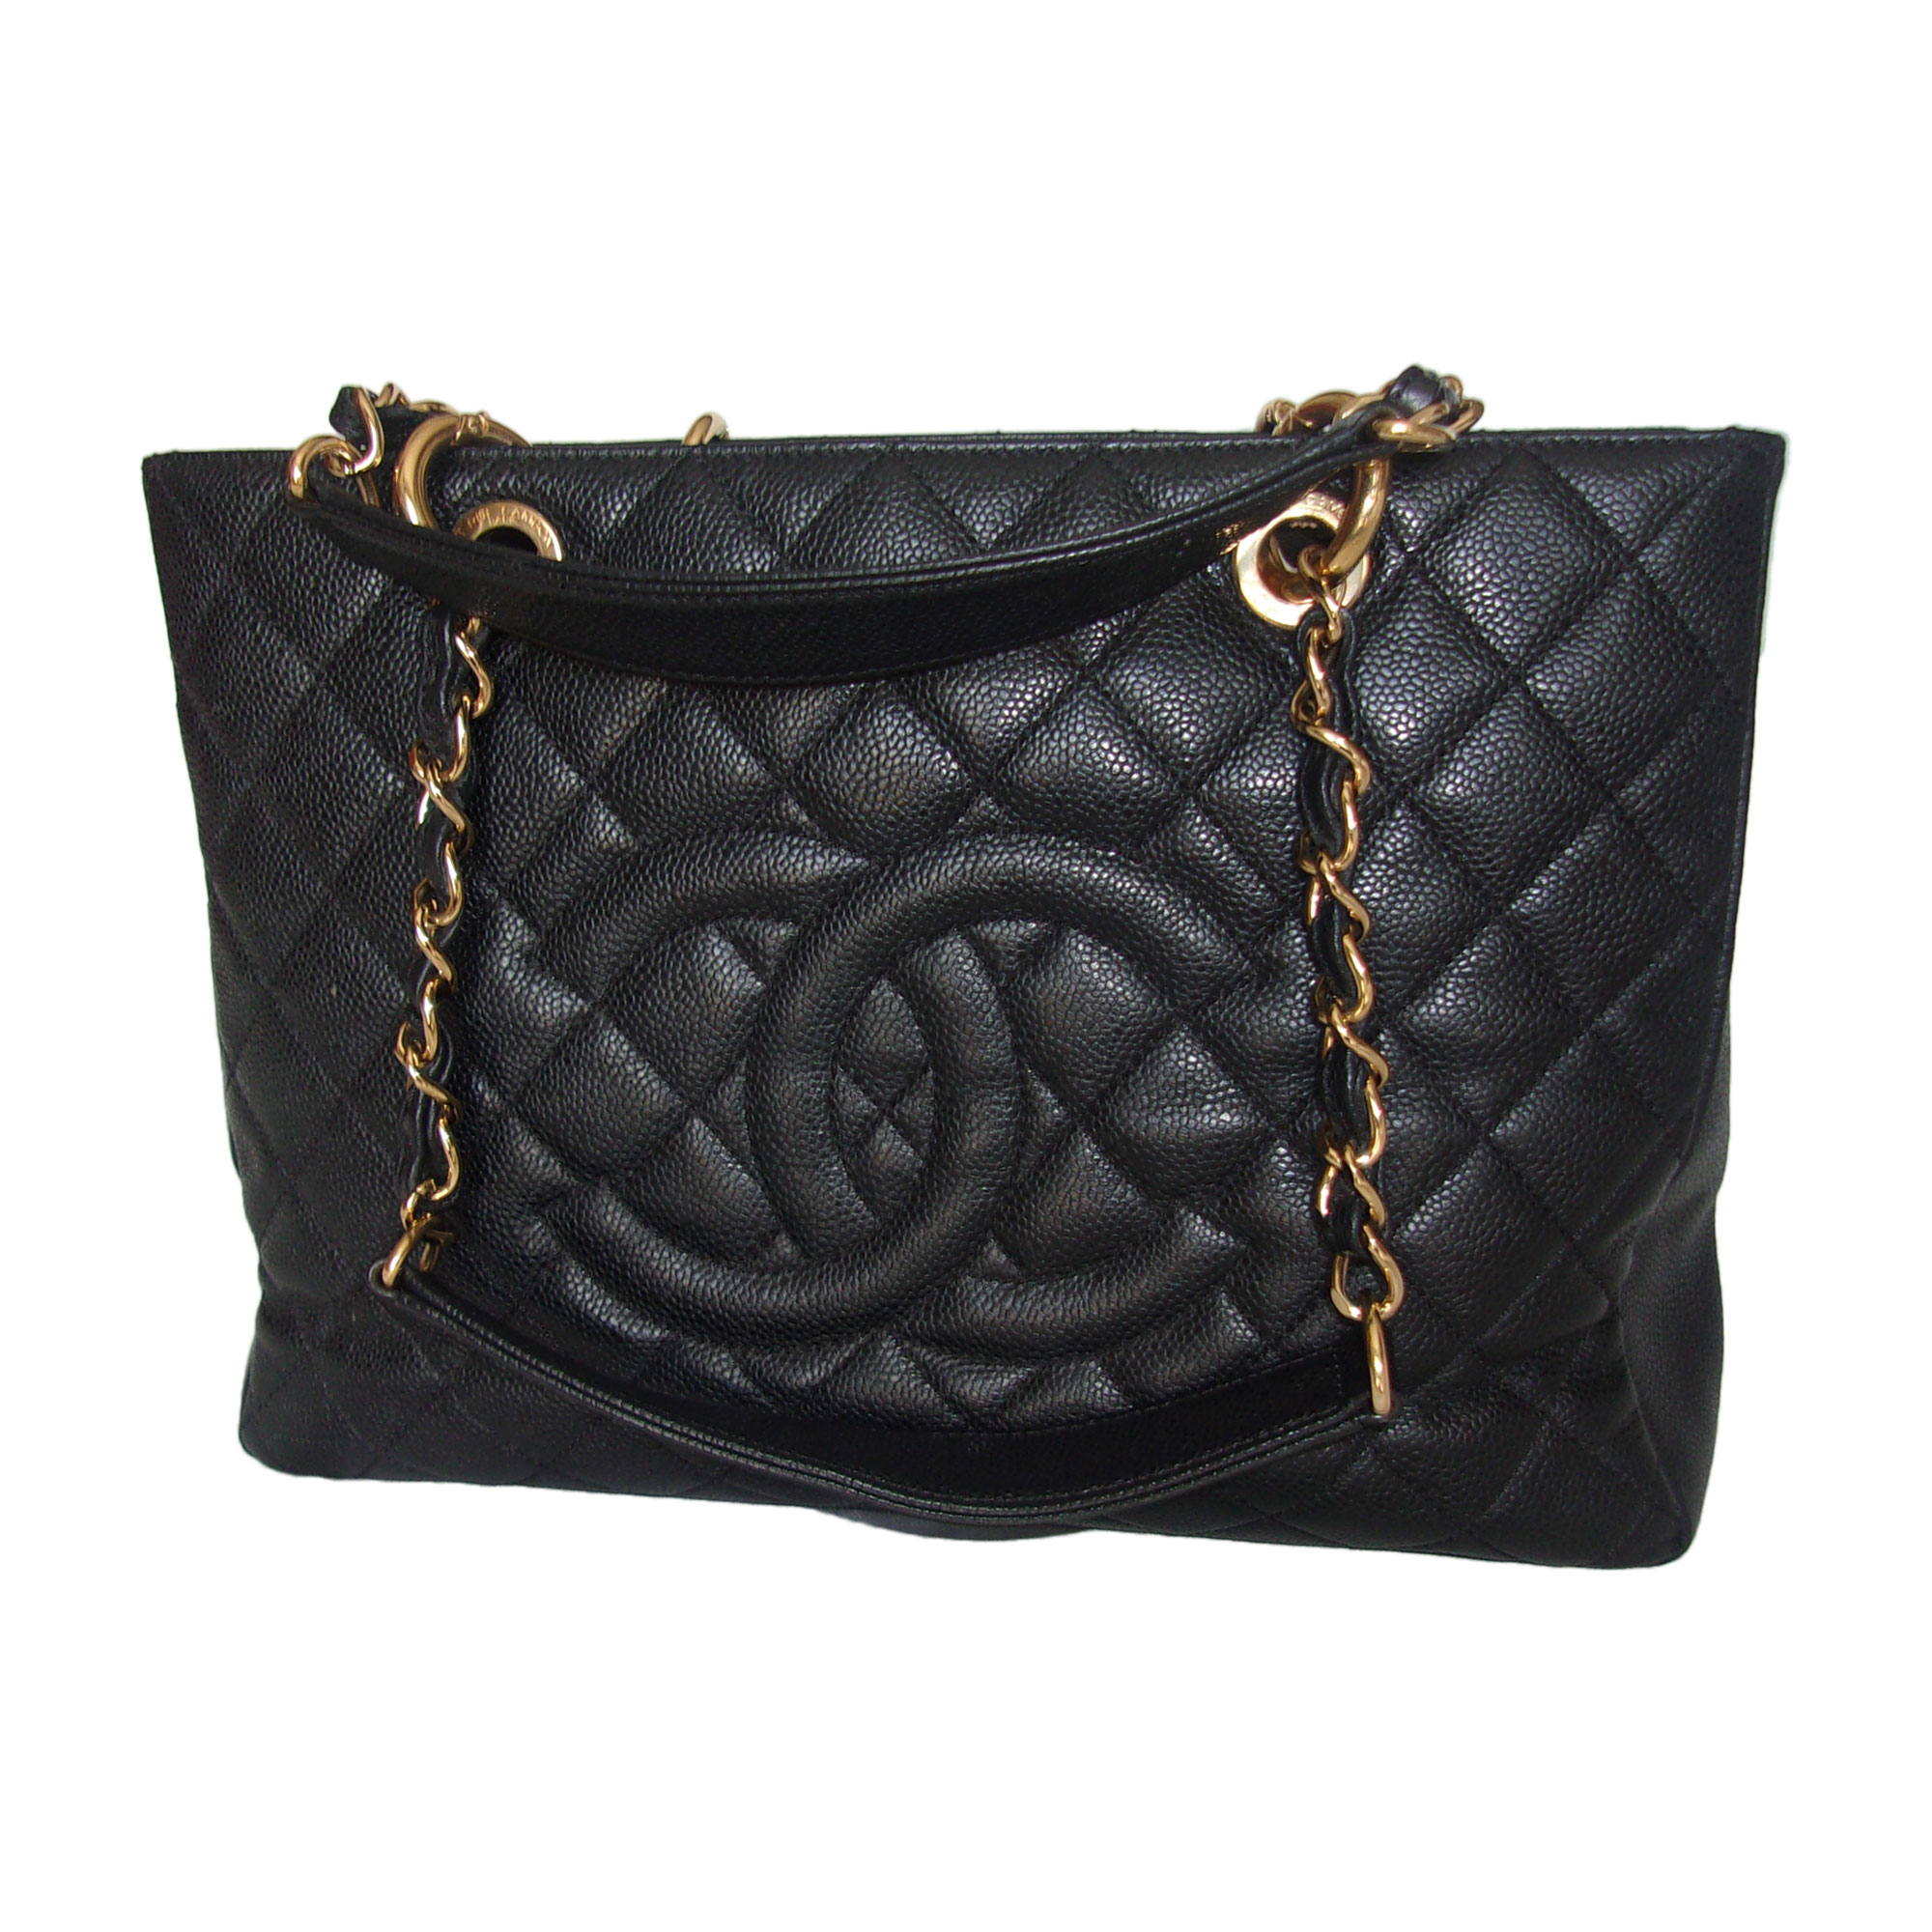 Sac à main en cuir CHANEL shopping noir vendu par France mode - 6467622 6449fd82857